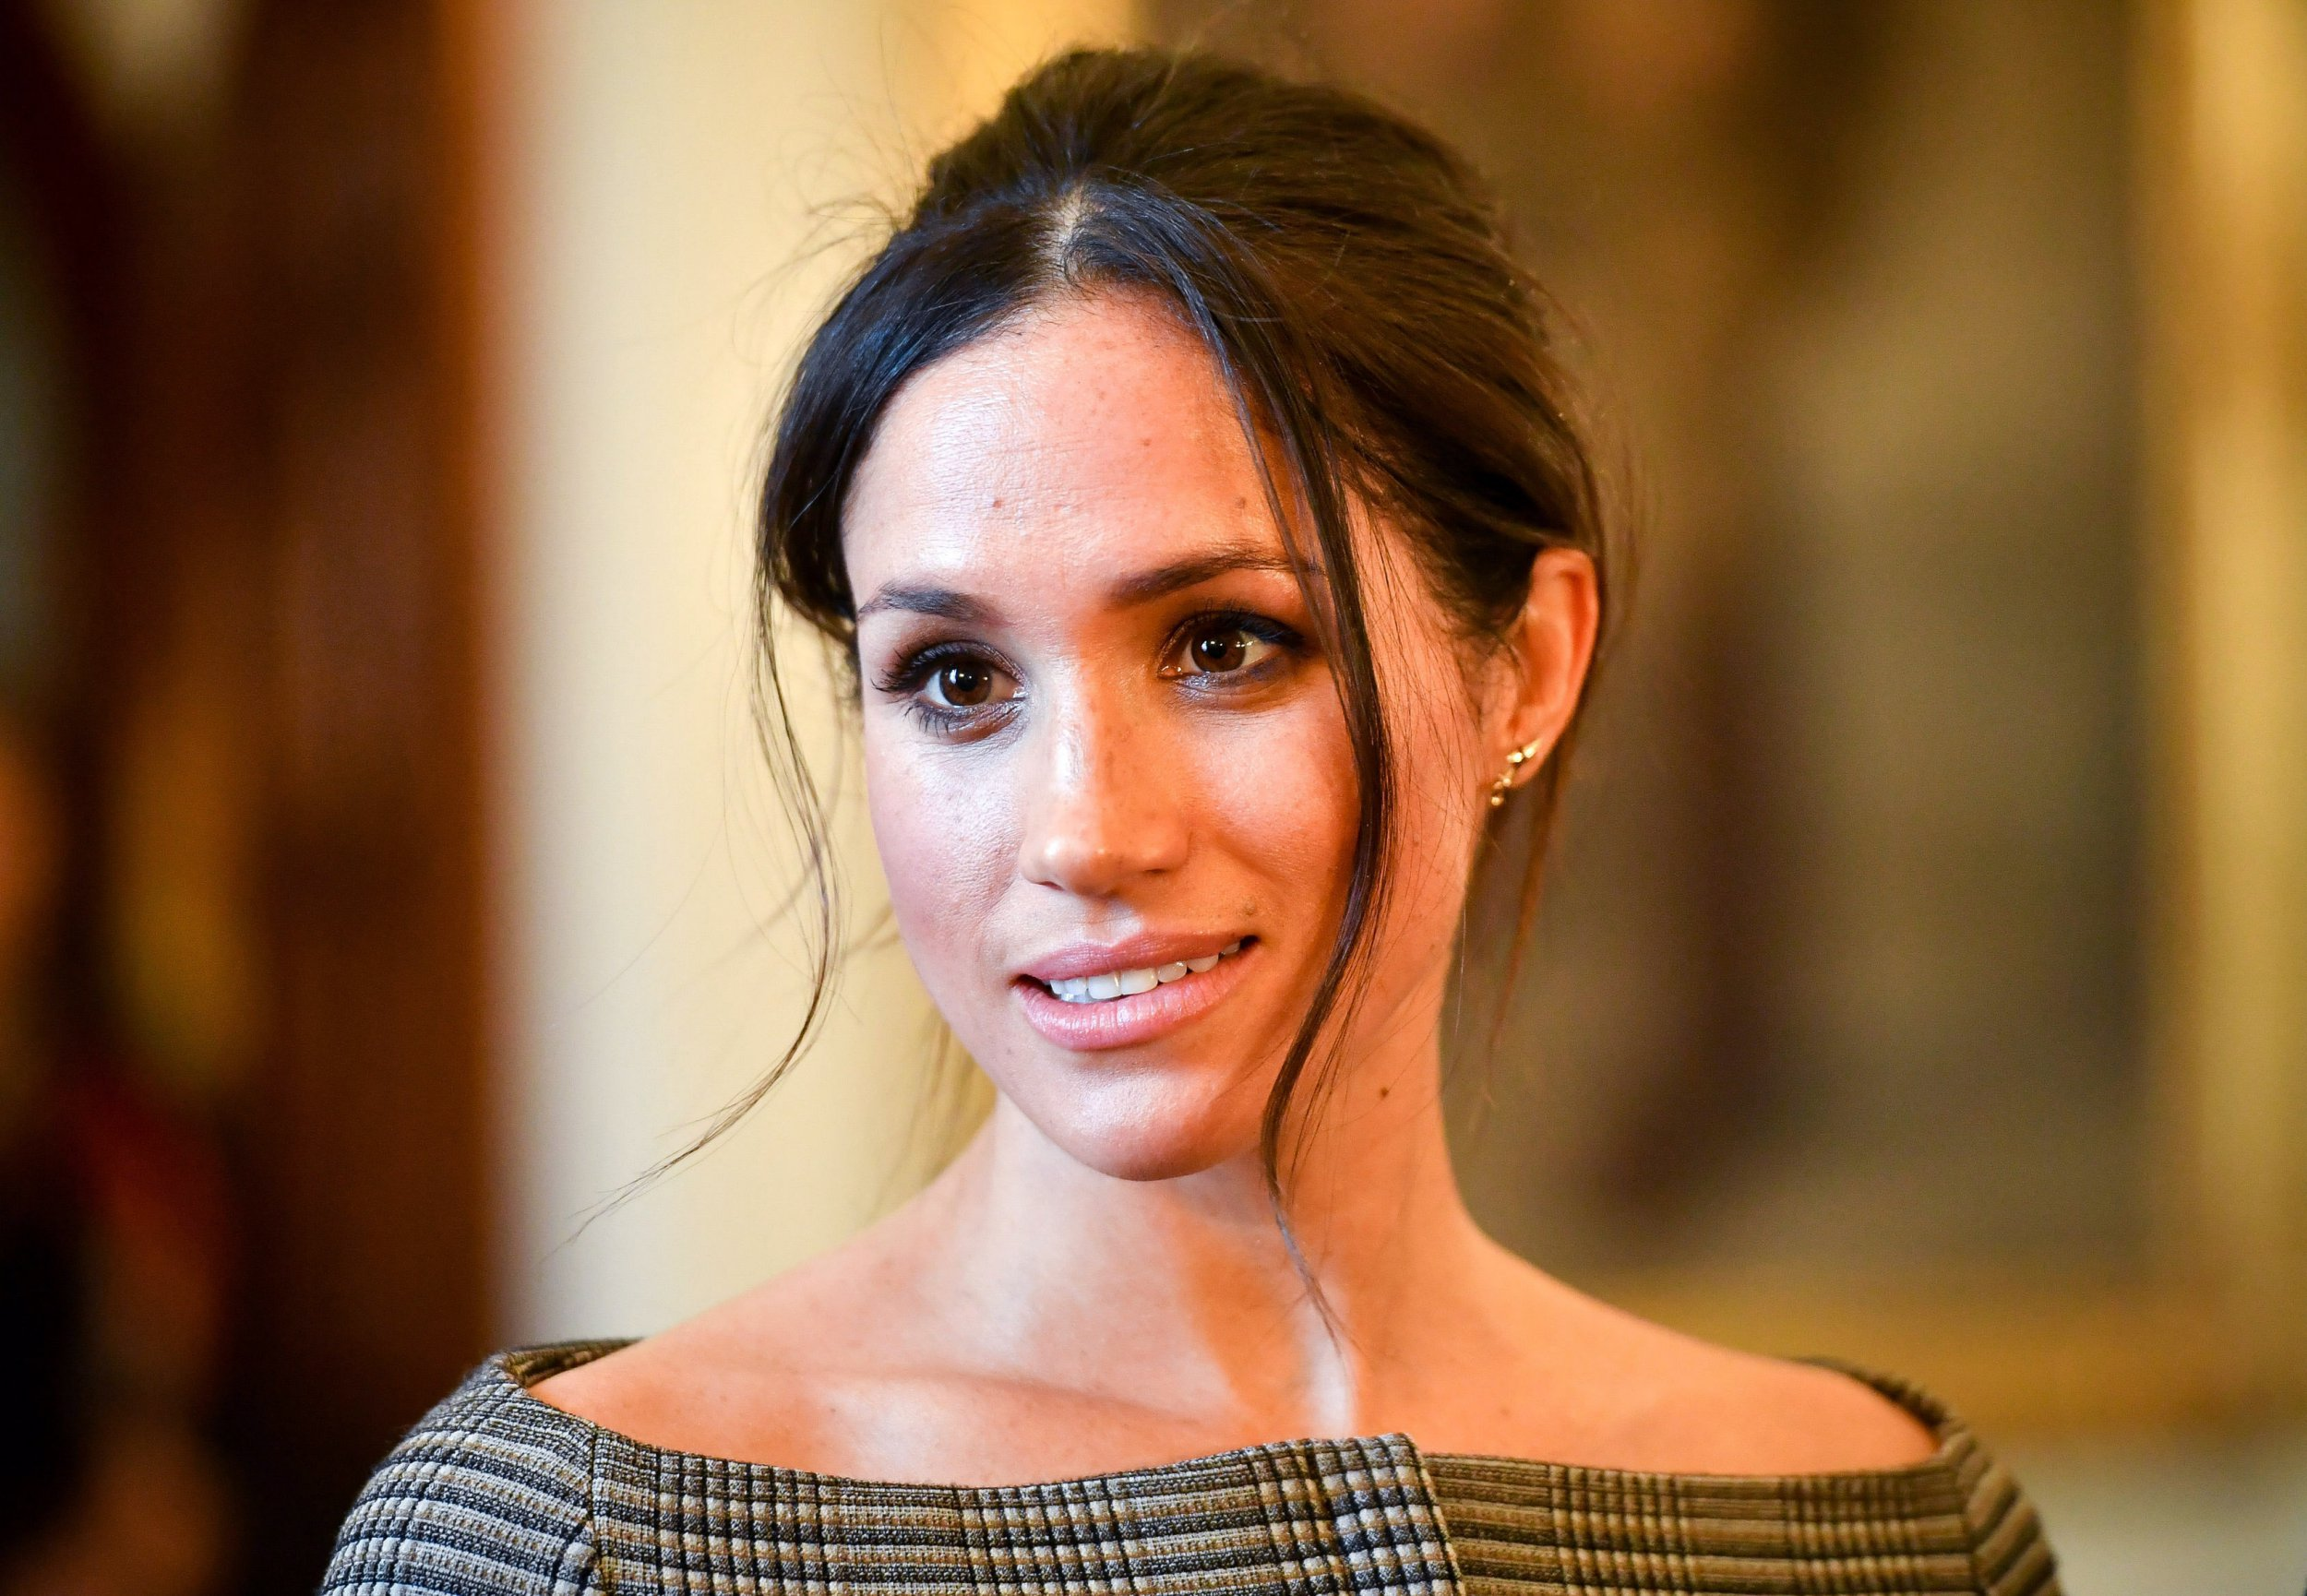 Odds on who will walk Meghan Markle down the aisle suggest Doria Ragland will do the honours